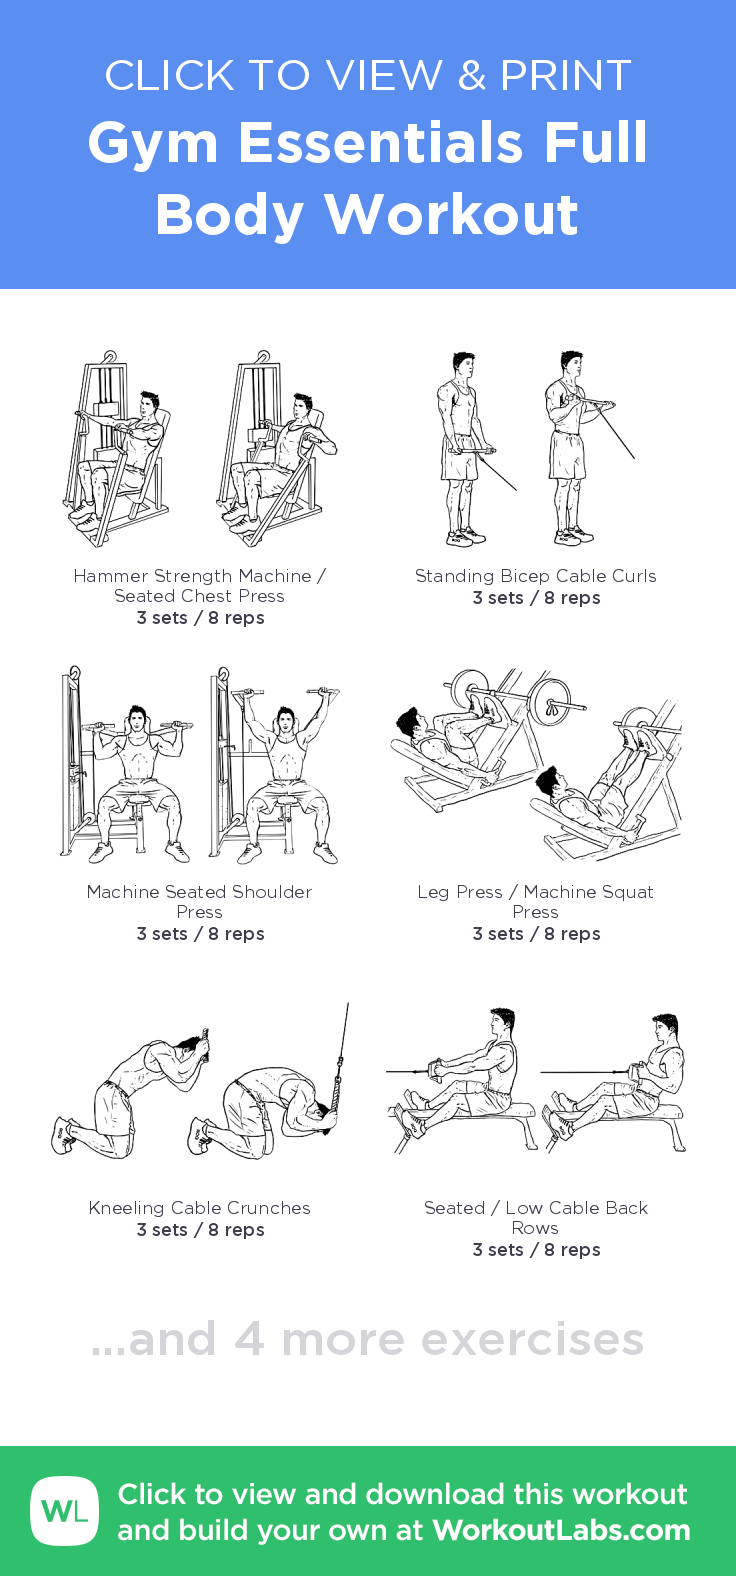 Gym Essentials Full Body Workout  Click To View And Print This